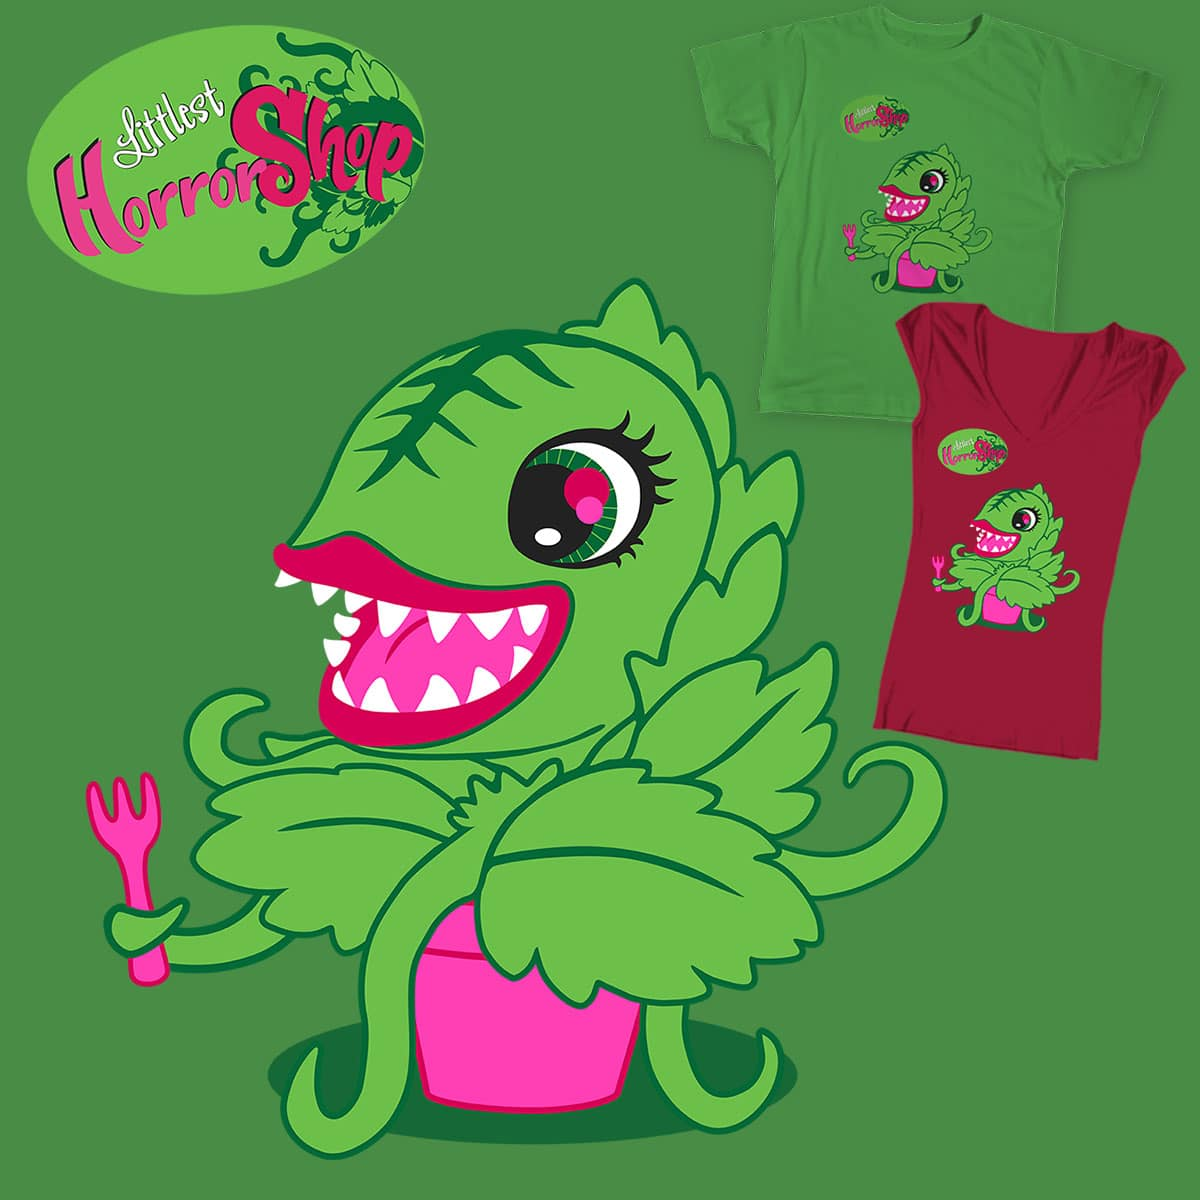 Littlest Horror Shop by Nox-dl on Threadless